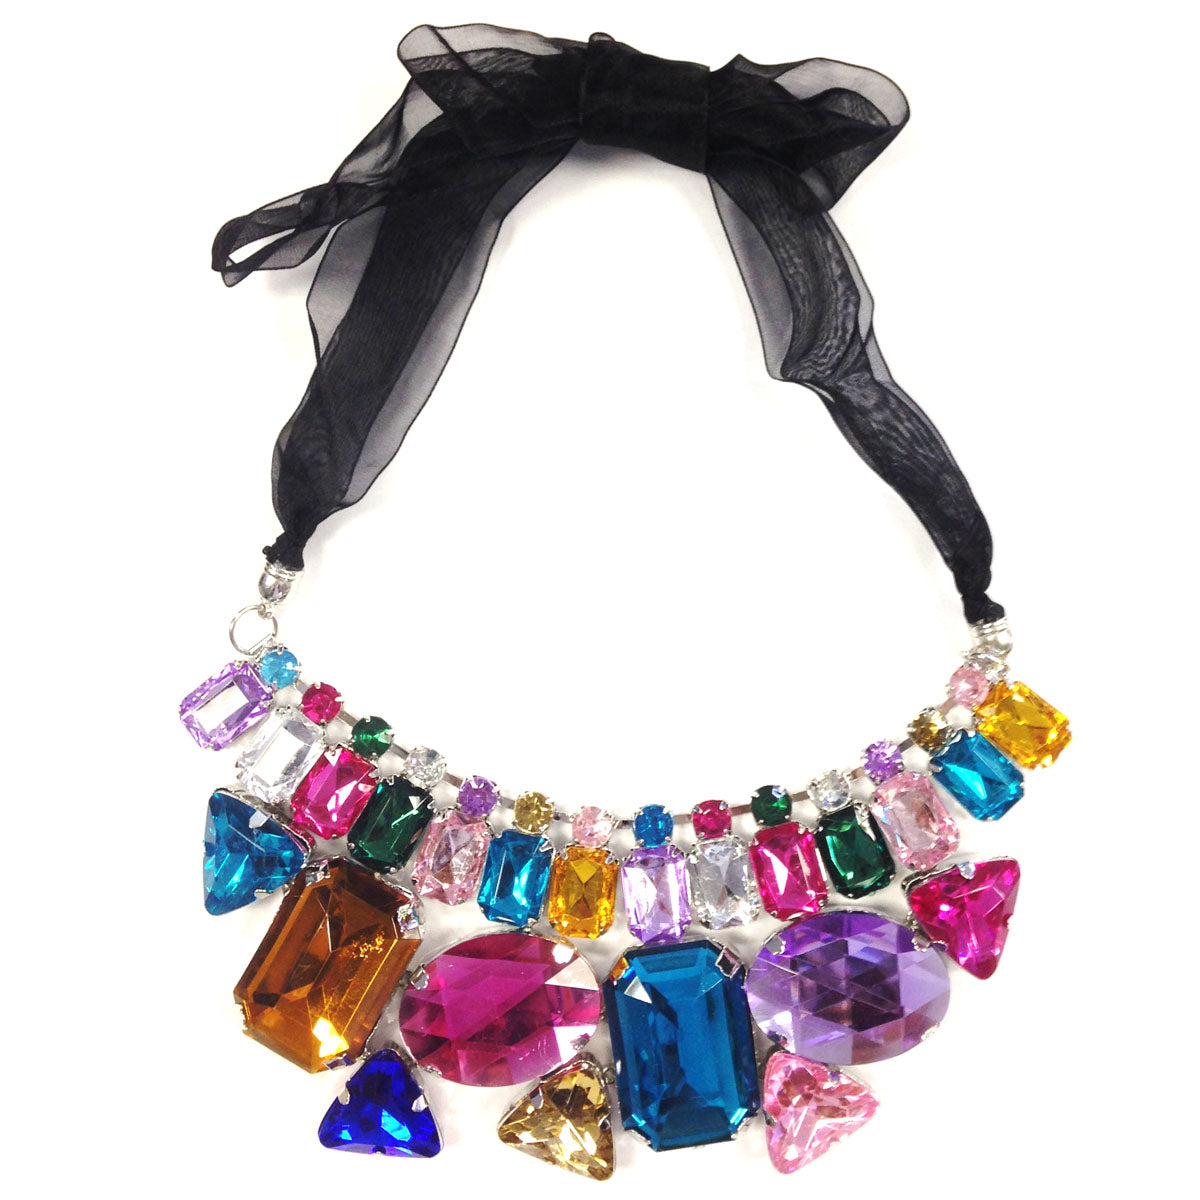 Wrapables Chunky Multicolor Jewel Gem Bib Statement Necklace